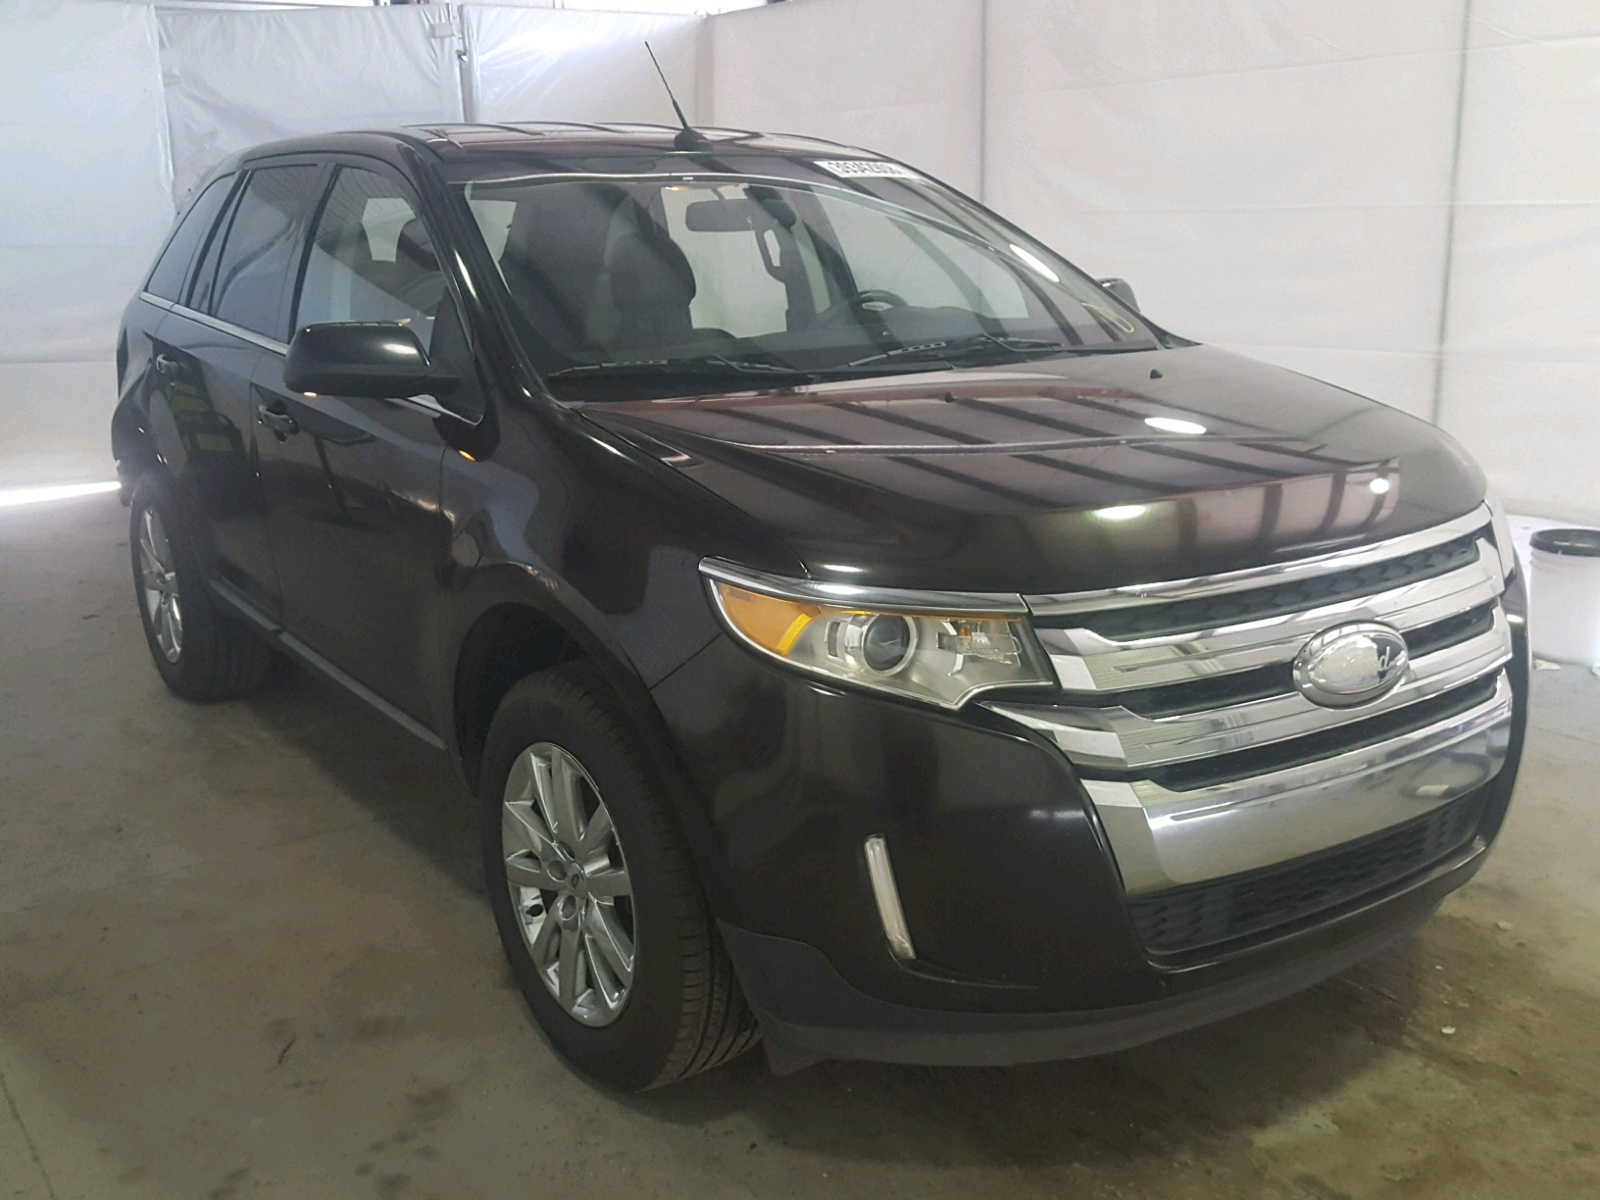 2013 Ford Edge Limited for sale at Copart Savannah GA Lot